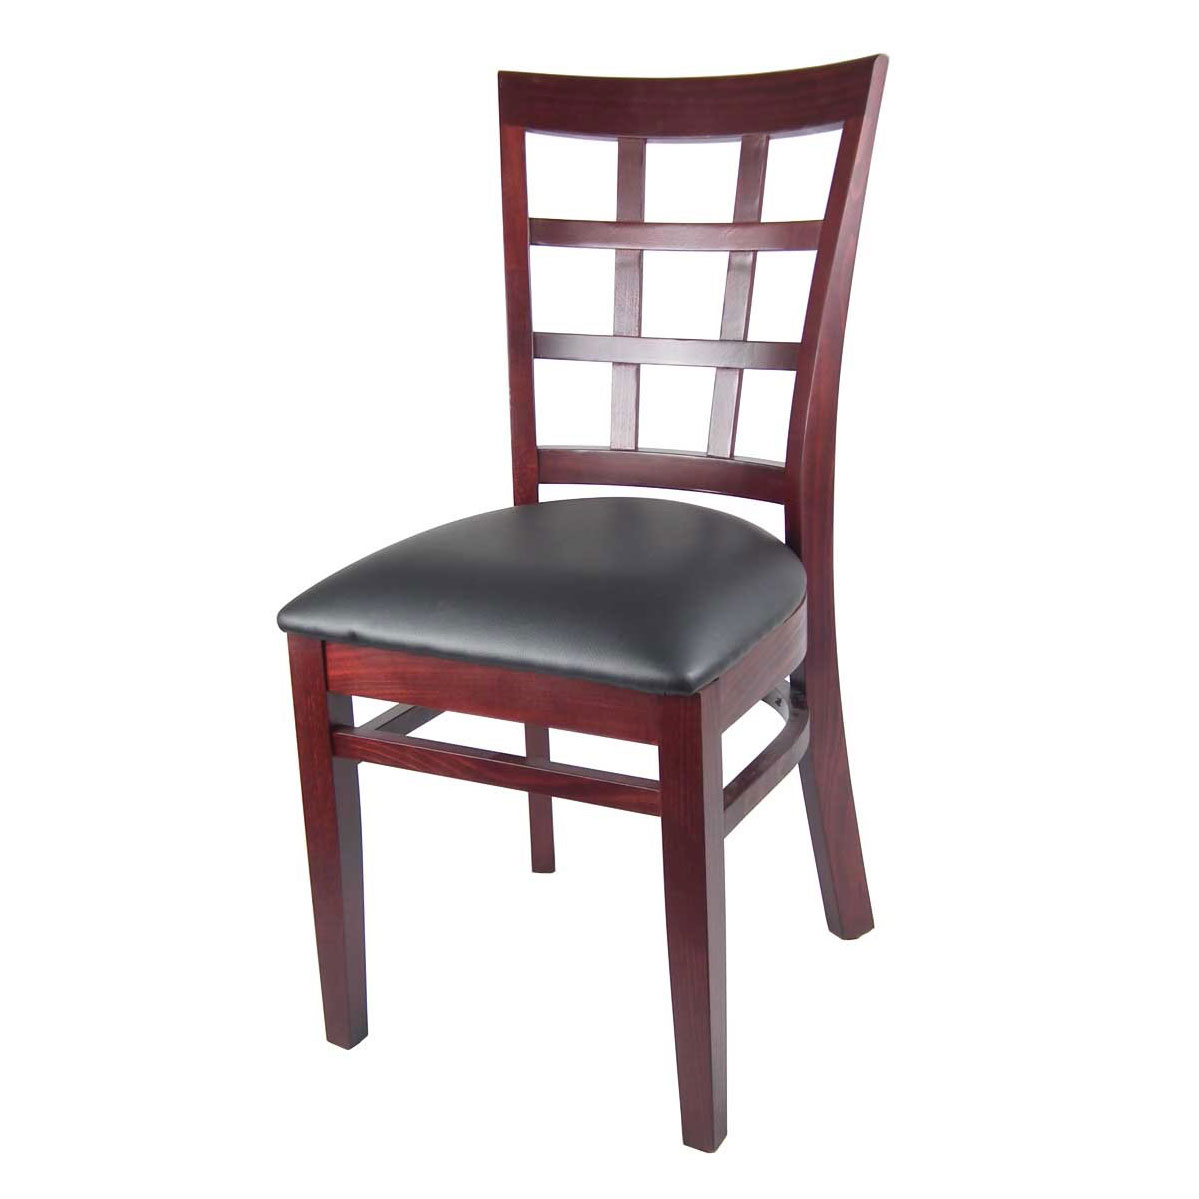 W27118-PS-BVS JustChair Manufacturing chair, side, indoor